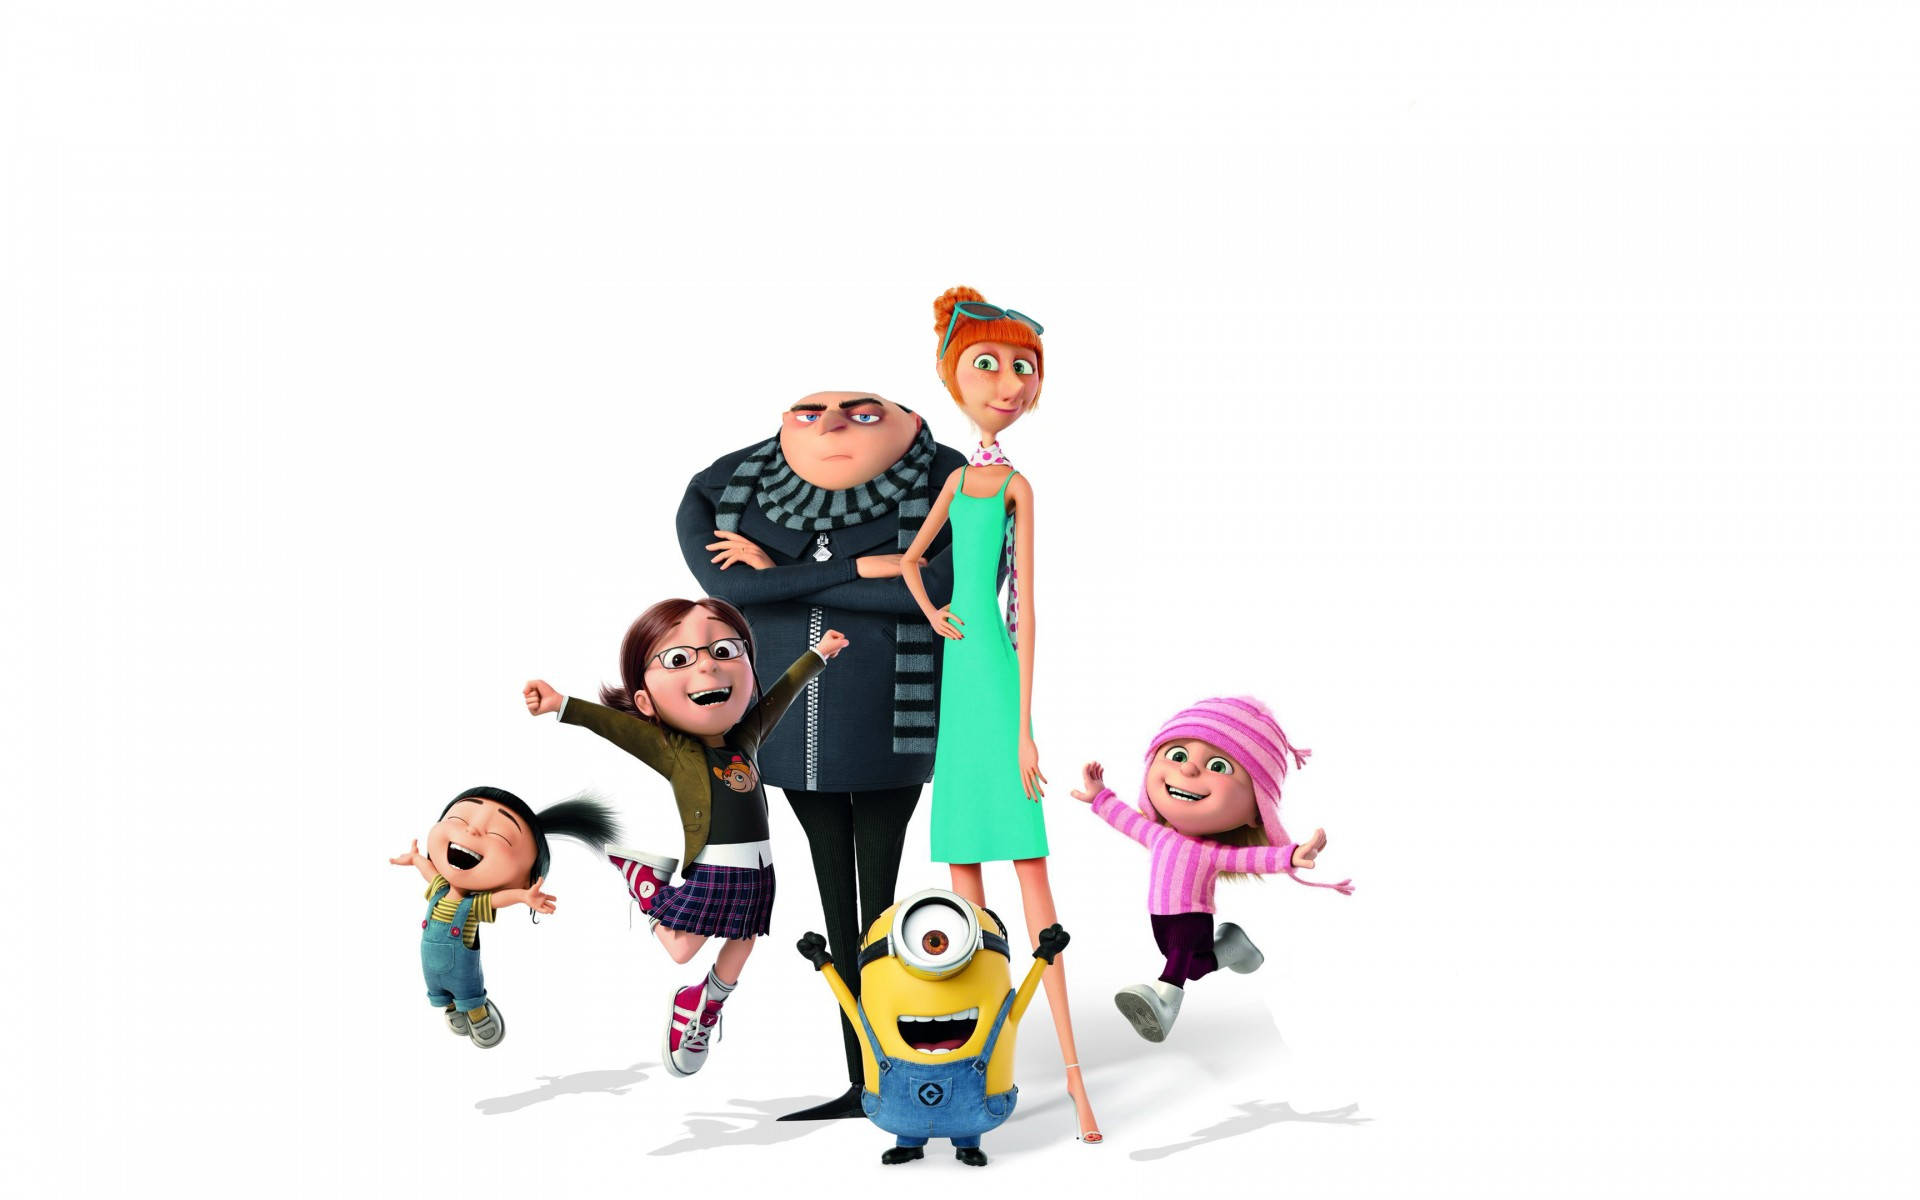 Download-high-quality-Despicable-Me-Gru-Lucy-Margo-Agnes-Edith-Minions-HD-Despicab-wallpaper-wp3605030